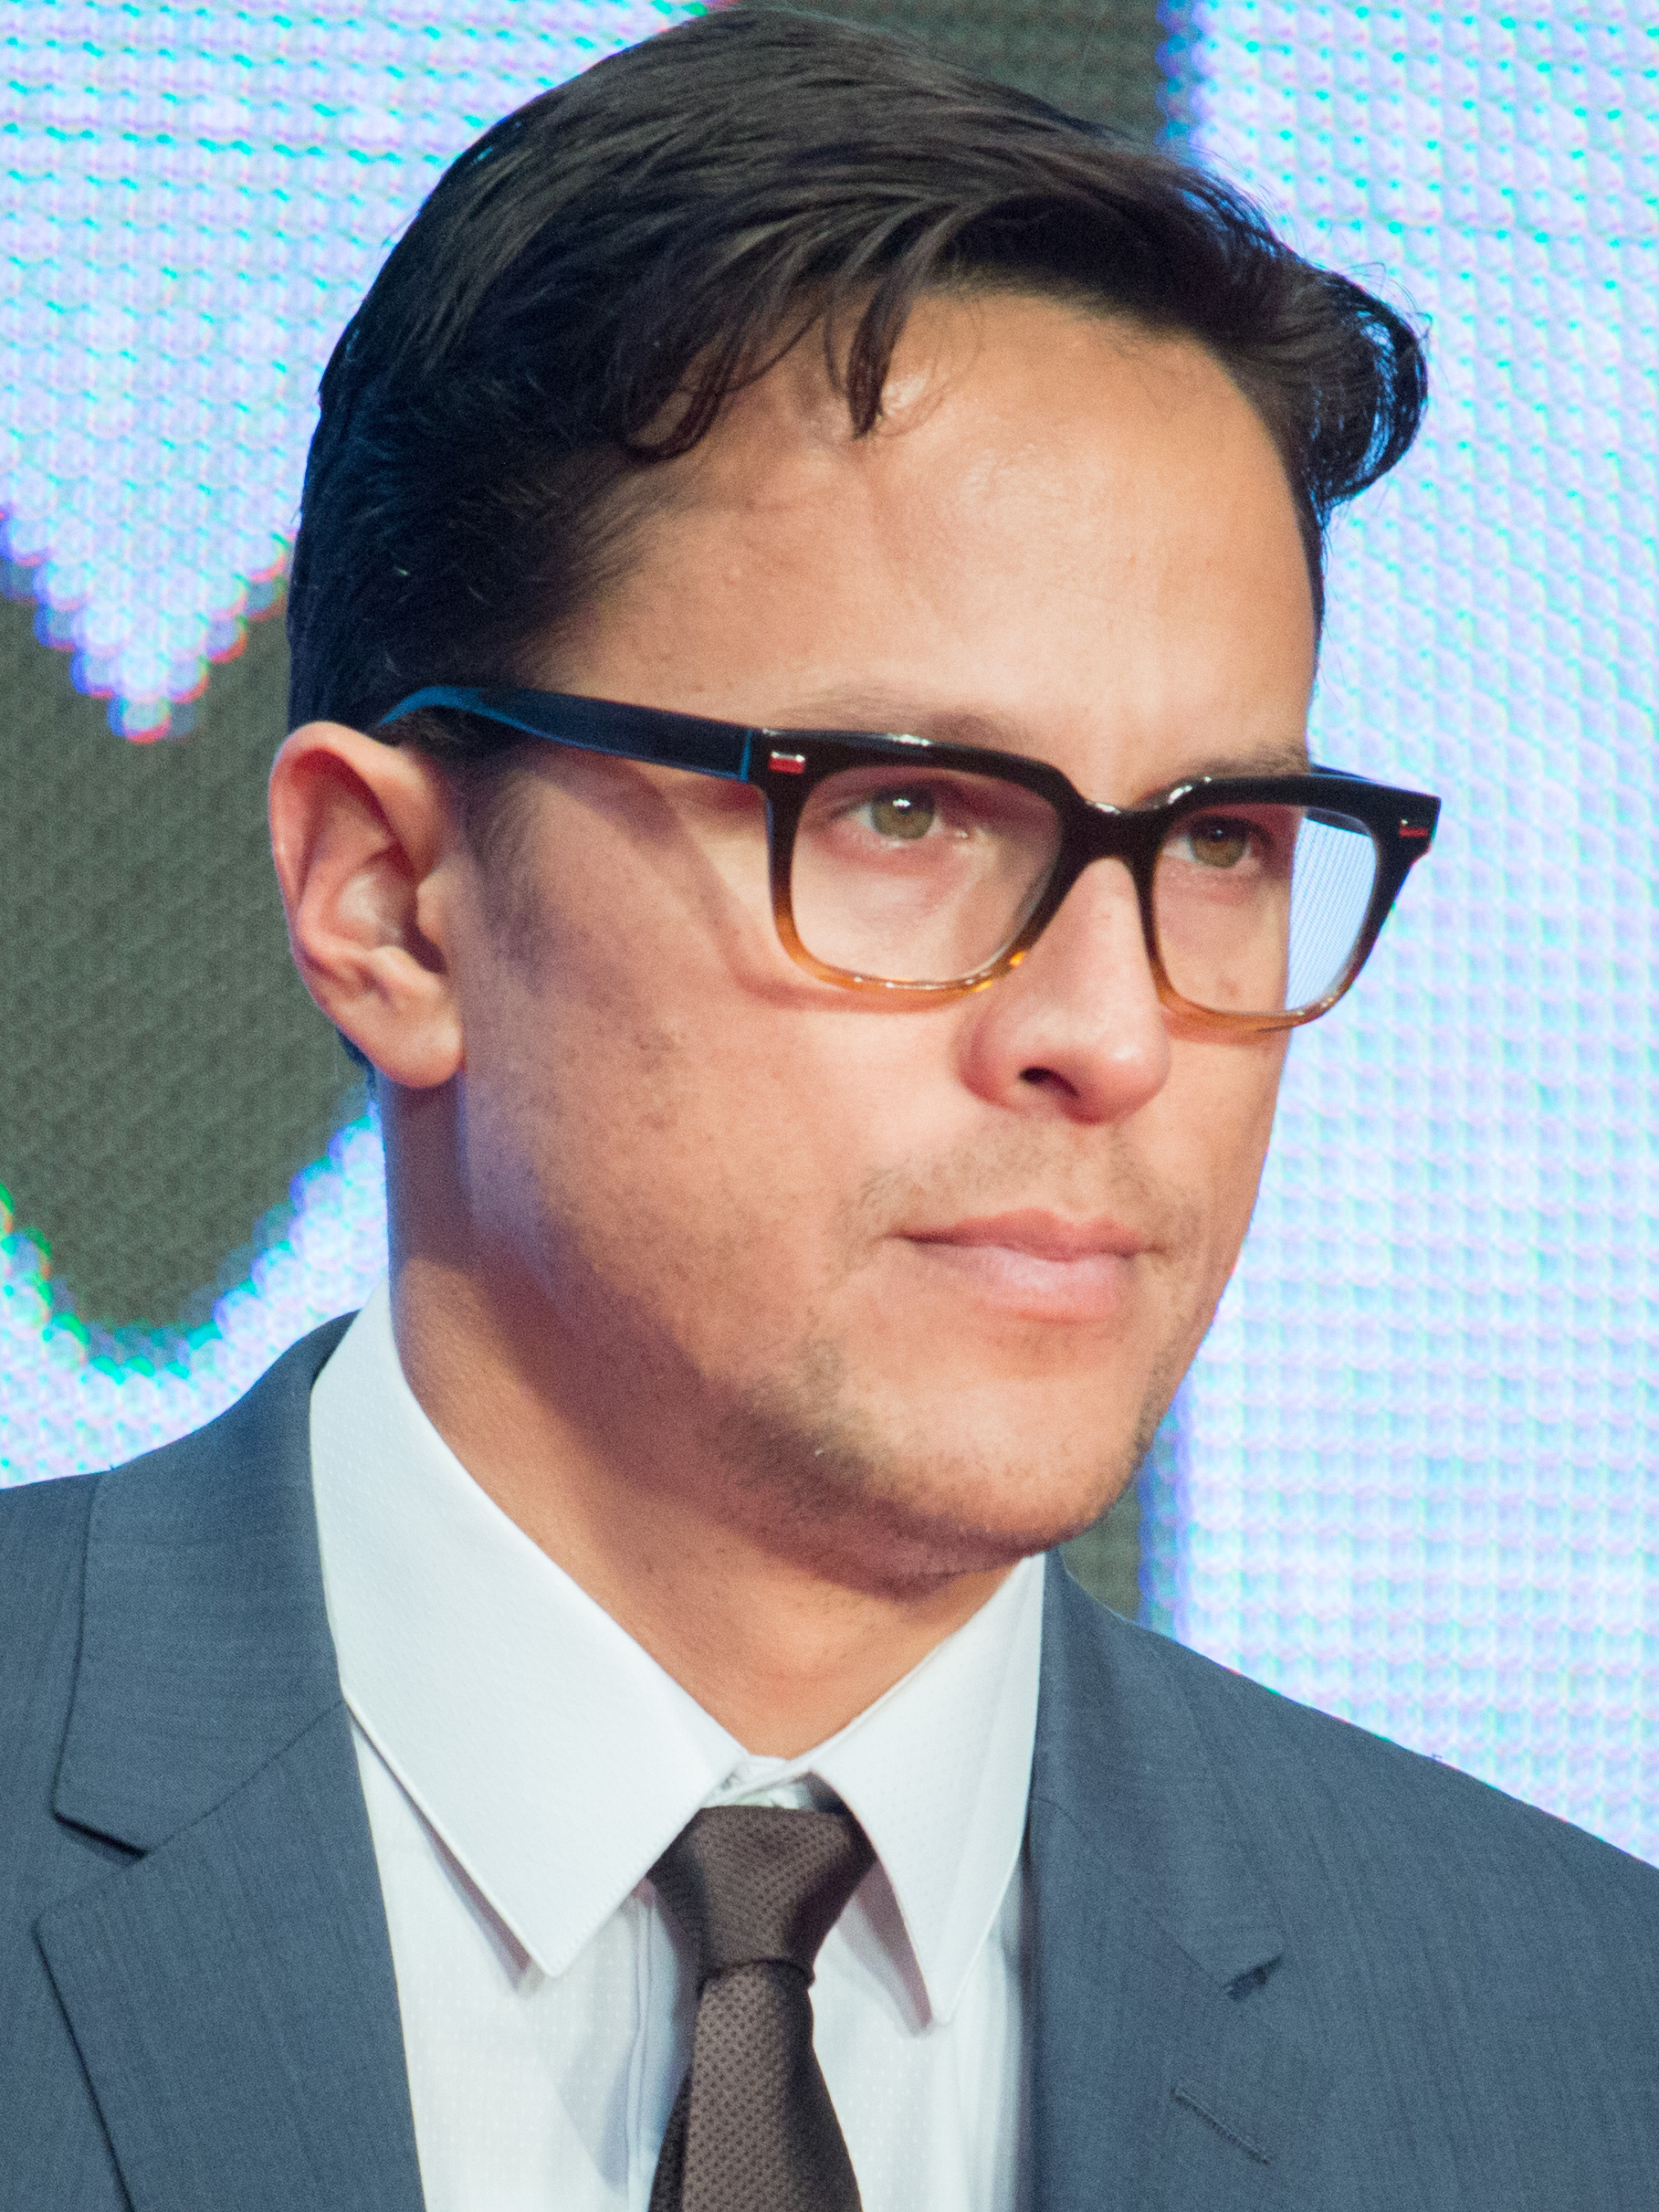 The 41-year old son of father (?) and mother(?) Cary Fukunaga in 2018 photo. Cary Fukunaga earned a  million dollar salary - leaving the net worth at 2 million in 2018